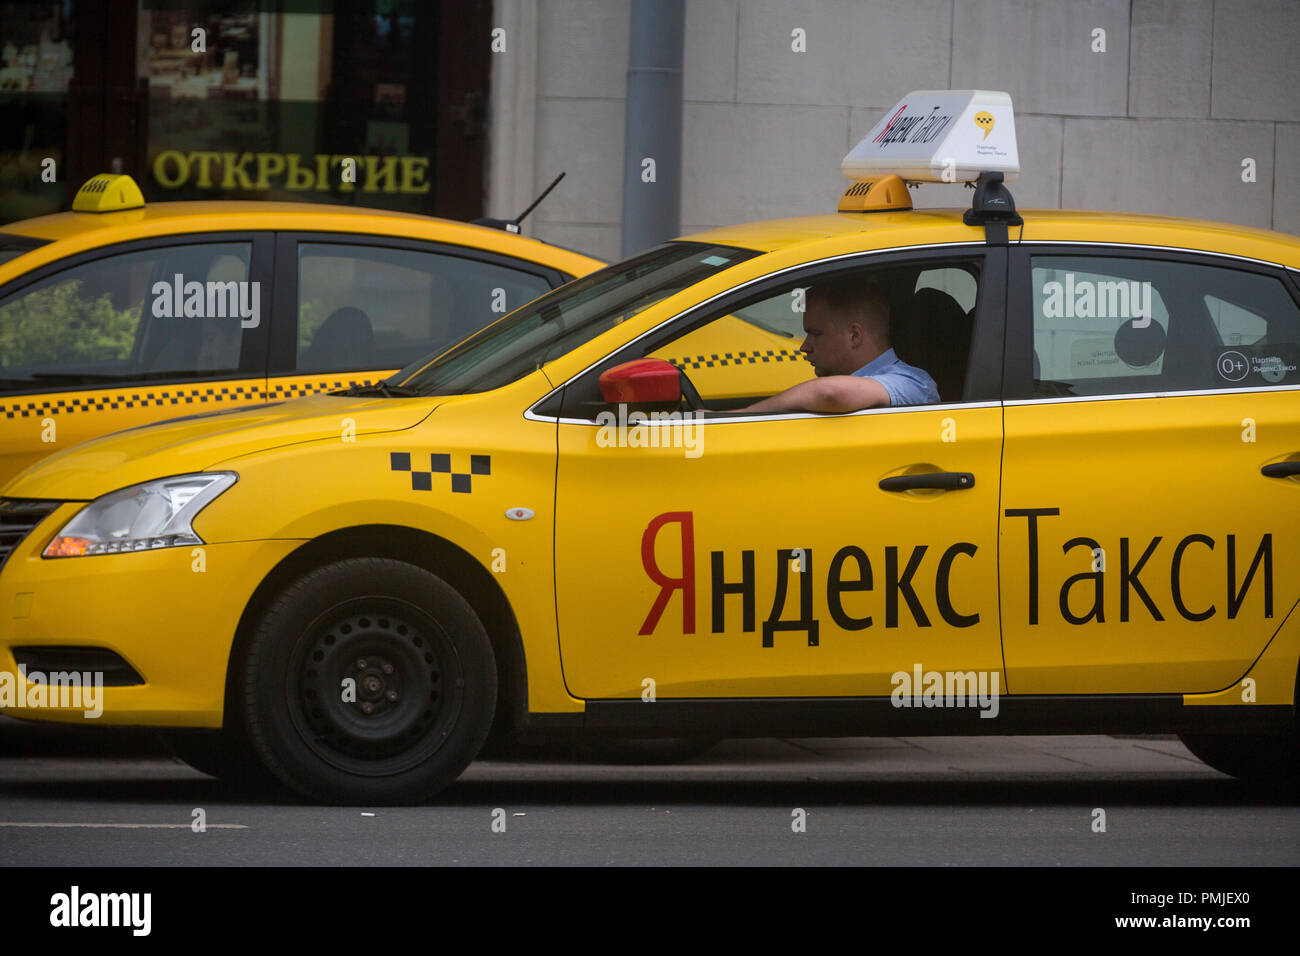 Yellow taxi with banner